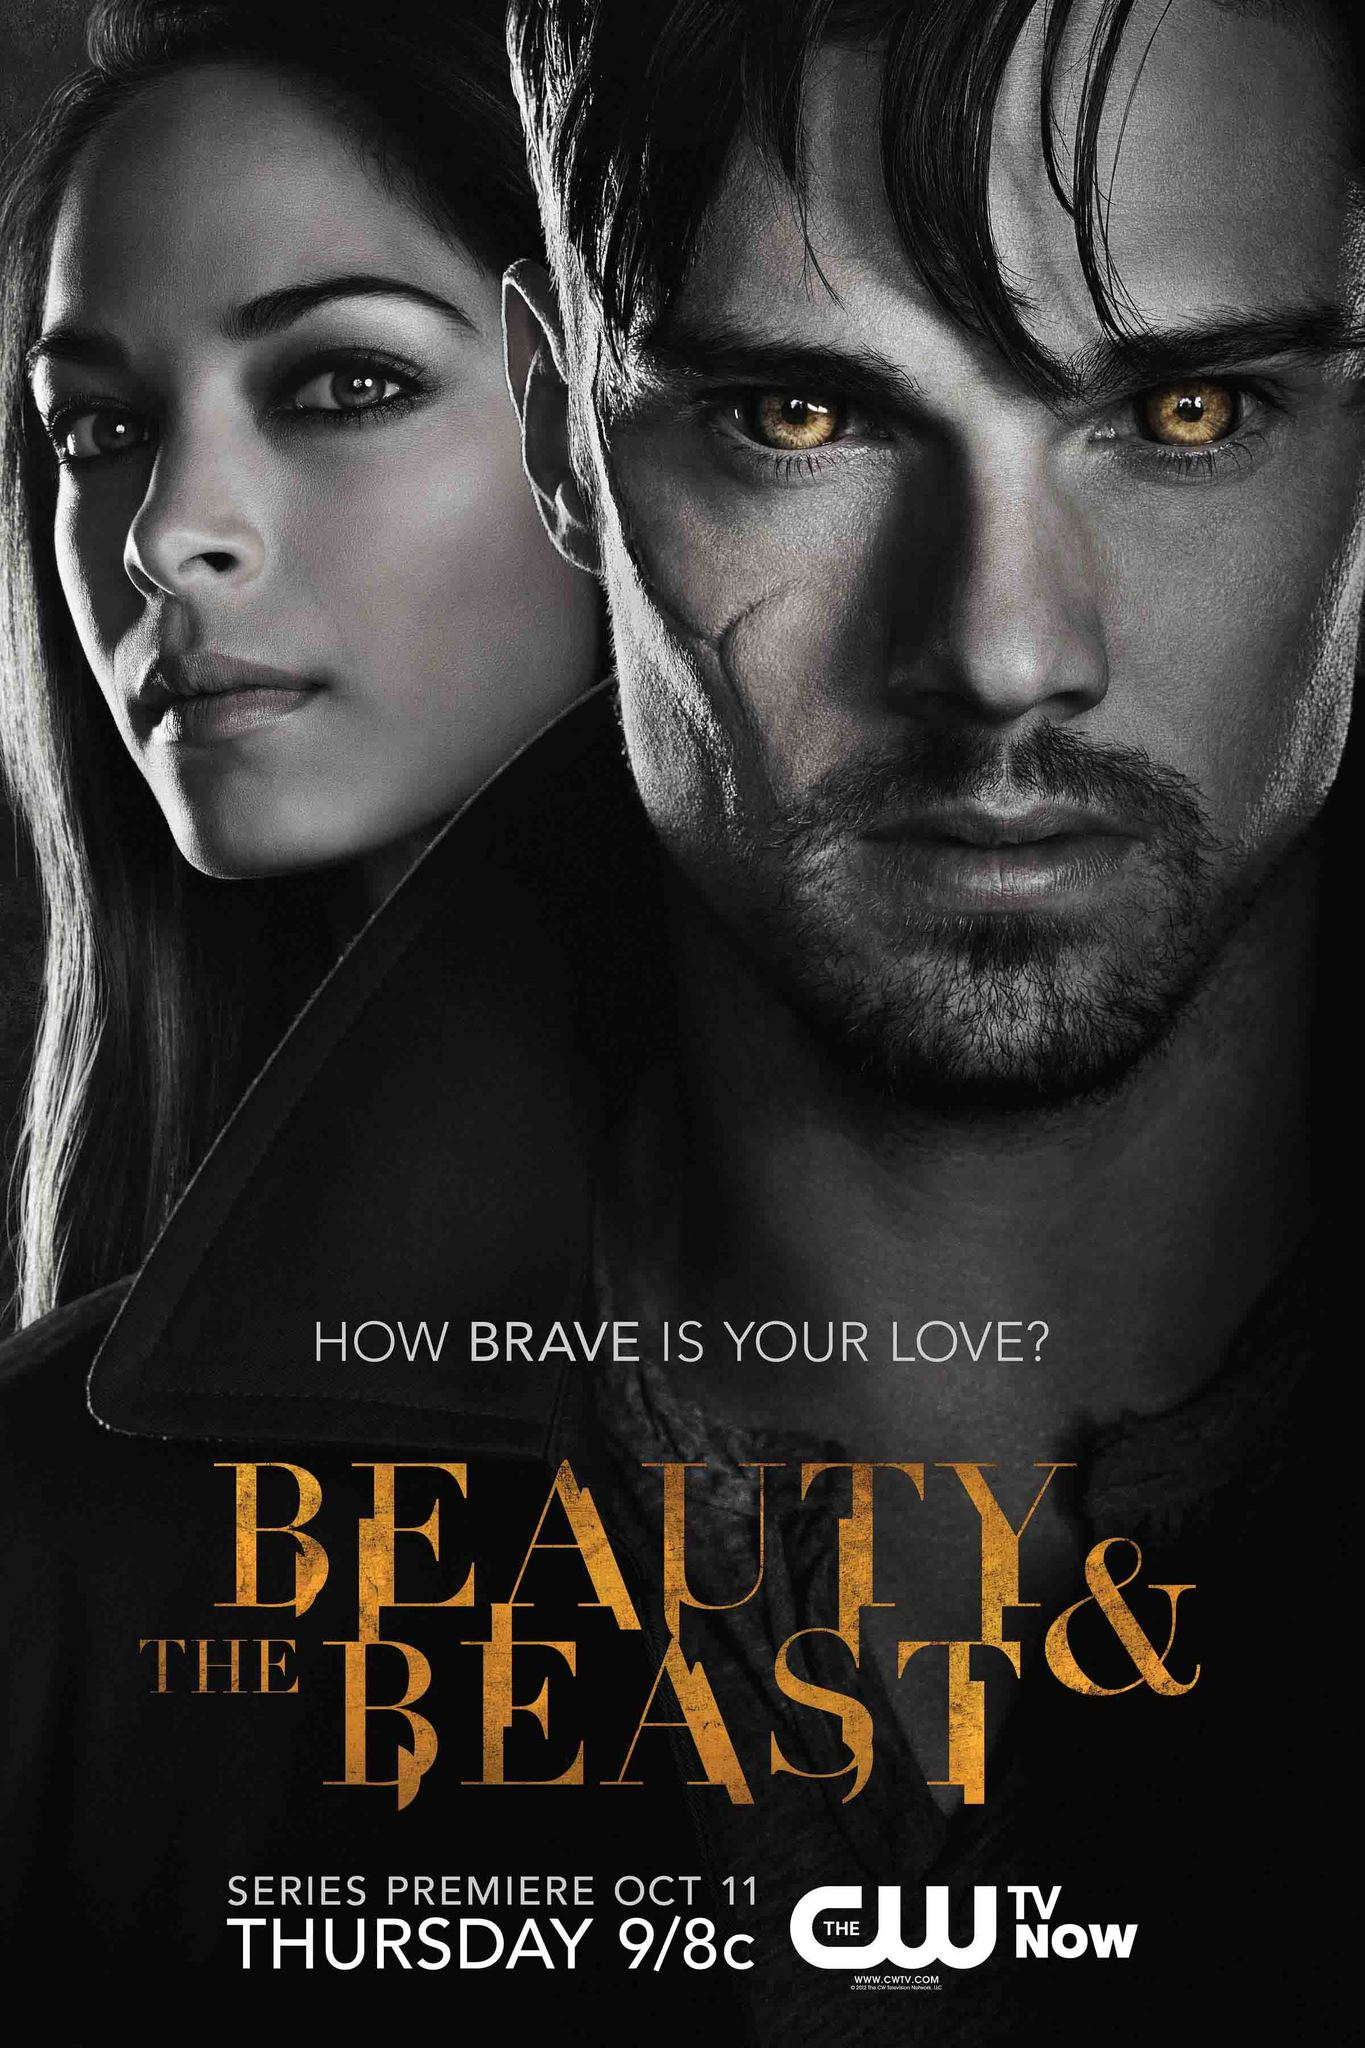 beauty and the beast season 1 download kickass